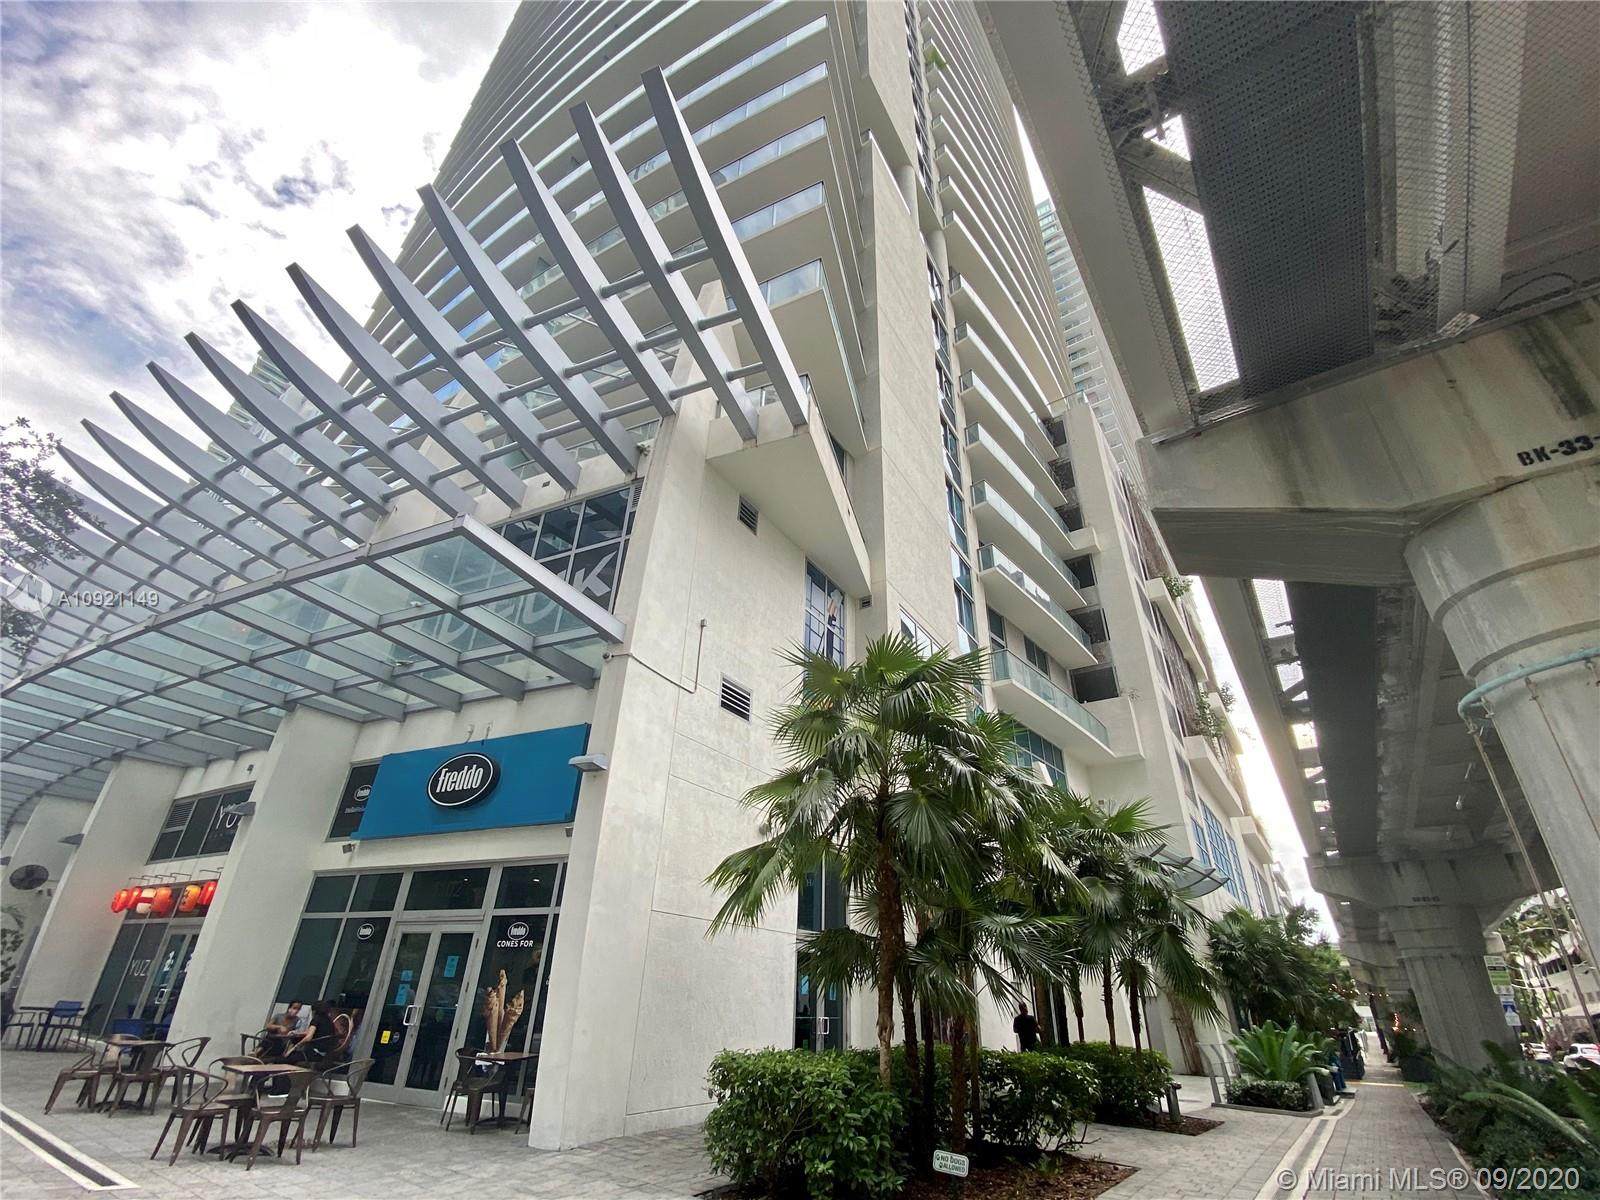 Great 2 bed 2 bath corner  unit in a new building, washer and dryer in the unit, assigned parking space.   Enjoy the wonderful Brickell area, best  location,  walking distance to all the entertainment. Amazing large balcony!! Amenities include a roof top pool, fitness center, movie theater, kids playroom.